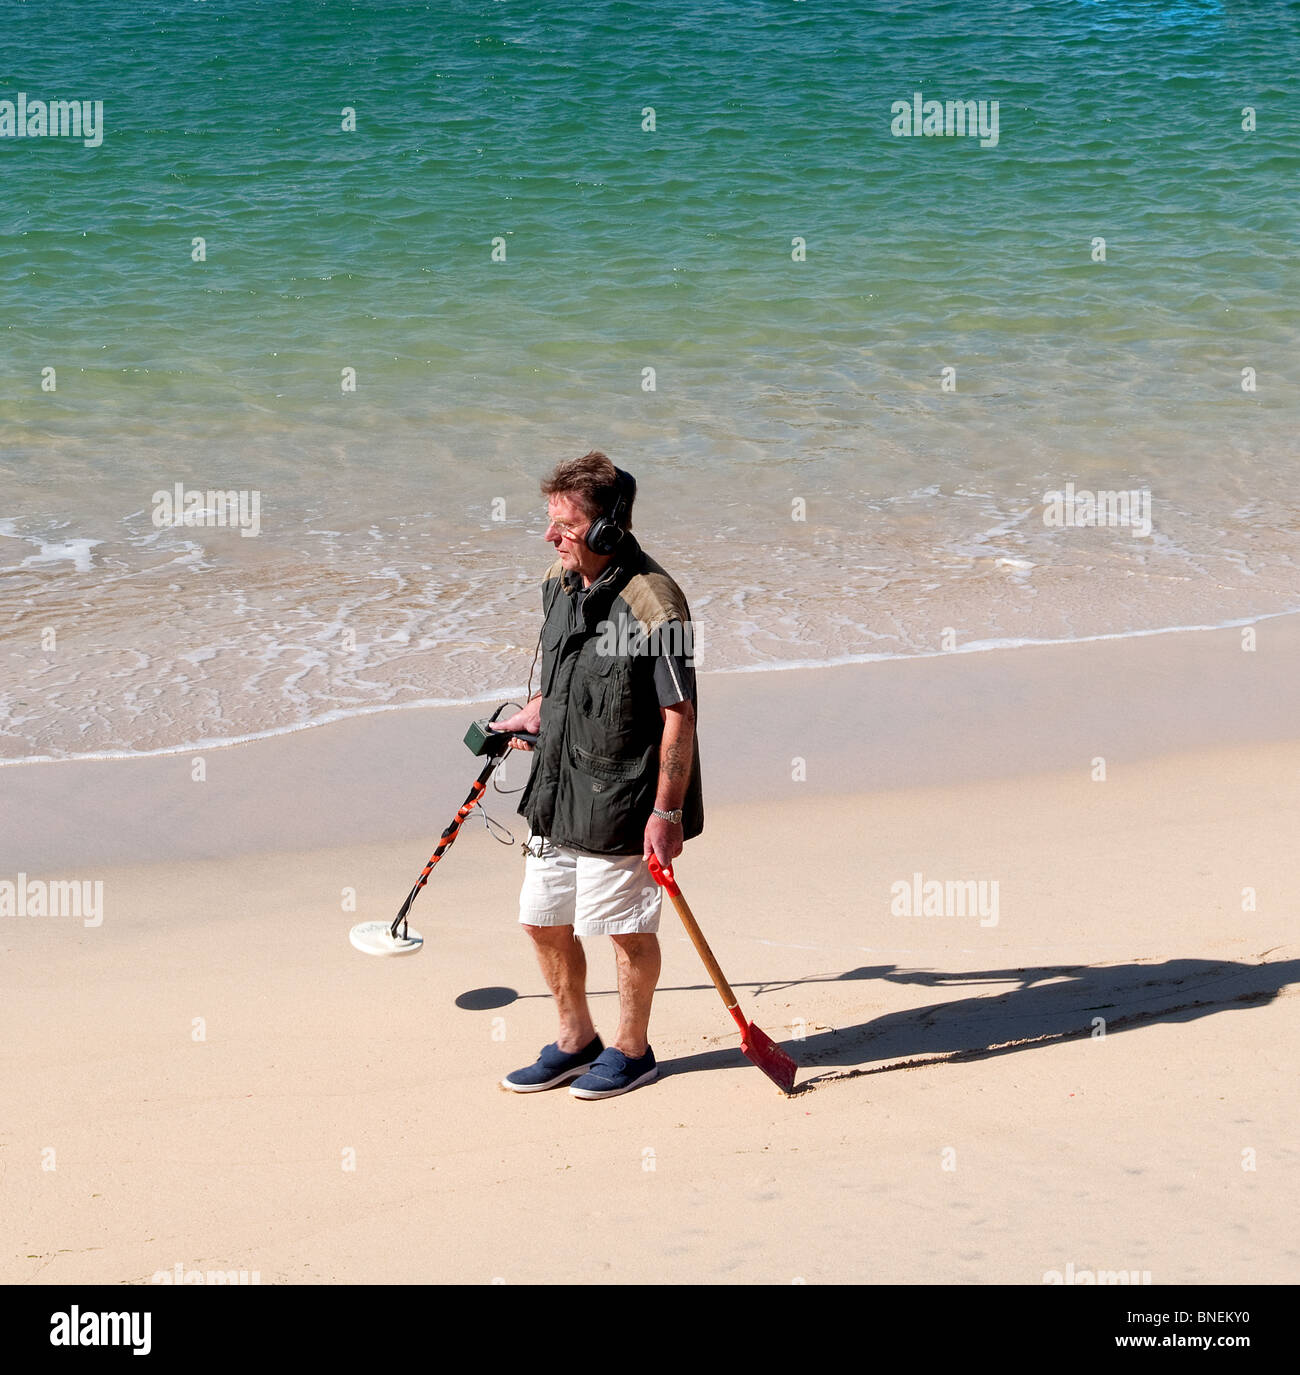 a man using a metal detector on the beach, england, uk - Stock Image